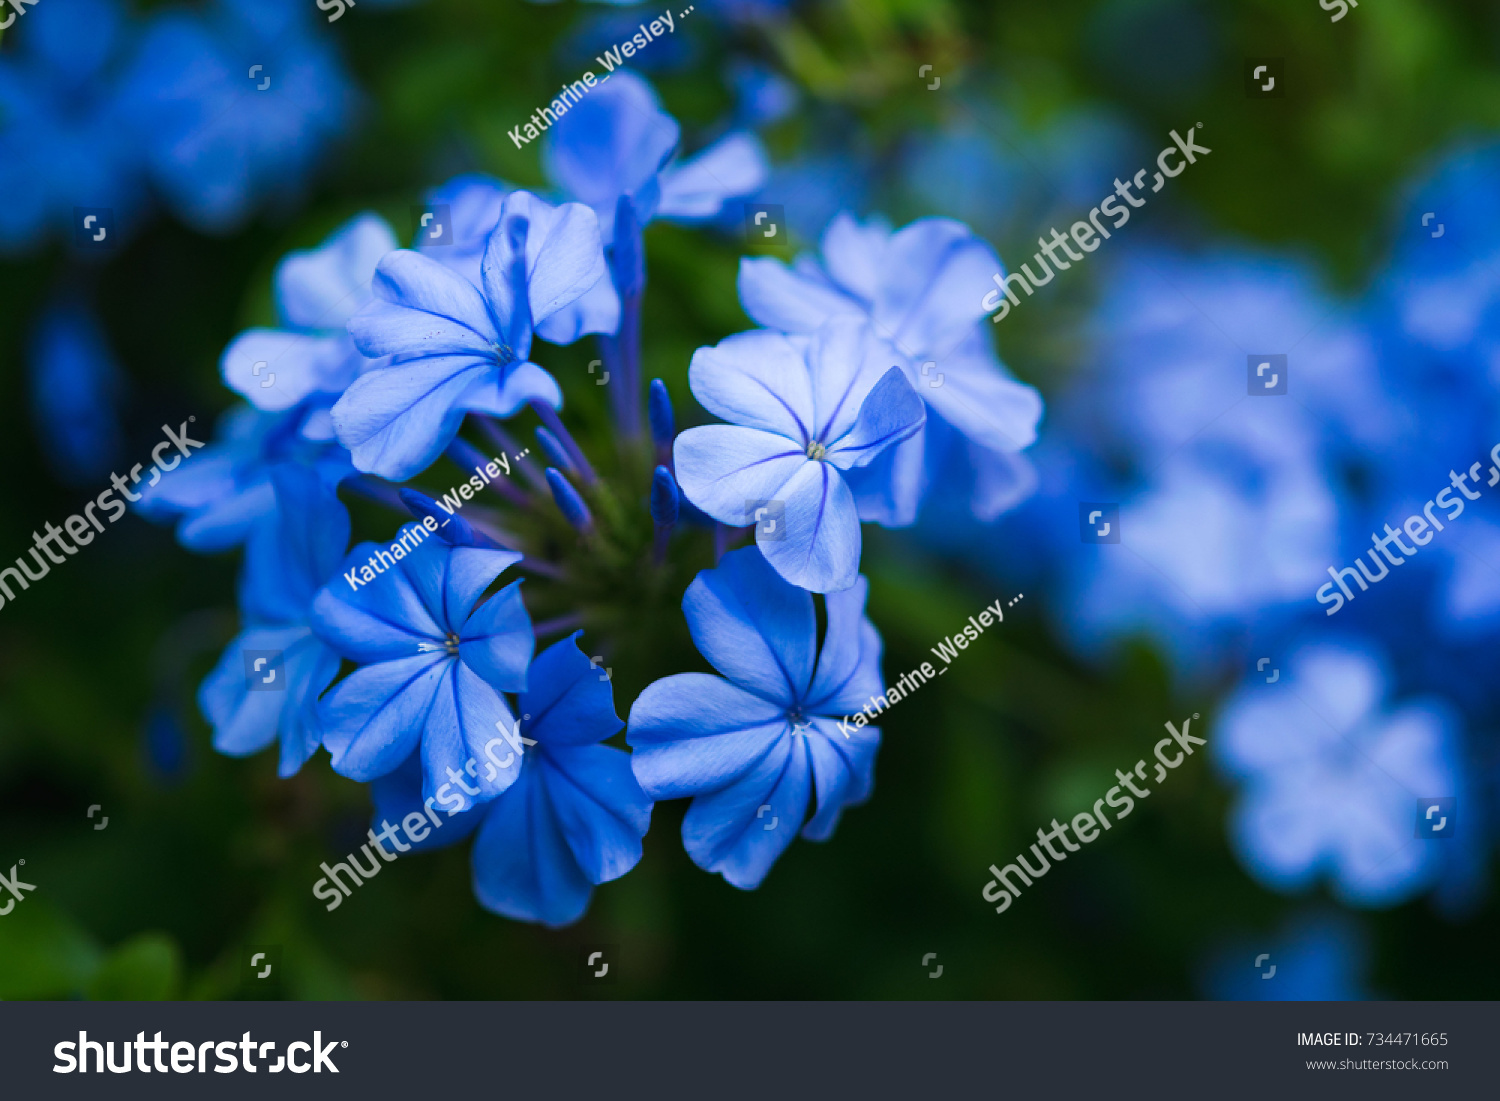 Plumbago auriculata bush blue flowers flower stock photo edit now plumbago auriculata bush blue flowers in a flower bush izmirmasajfo